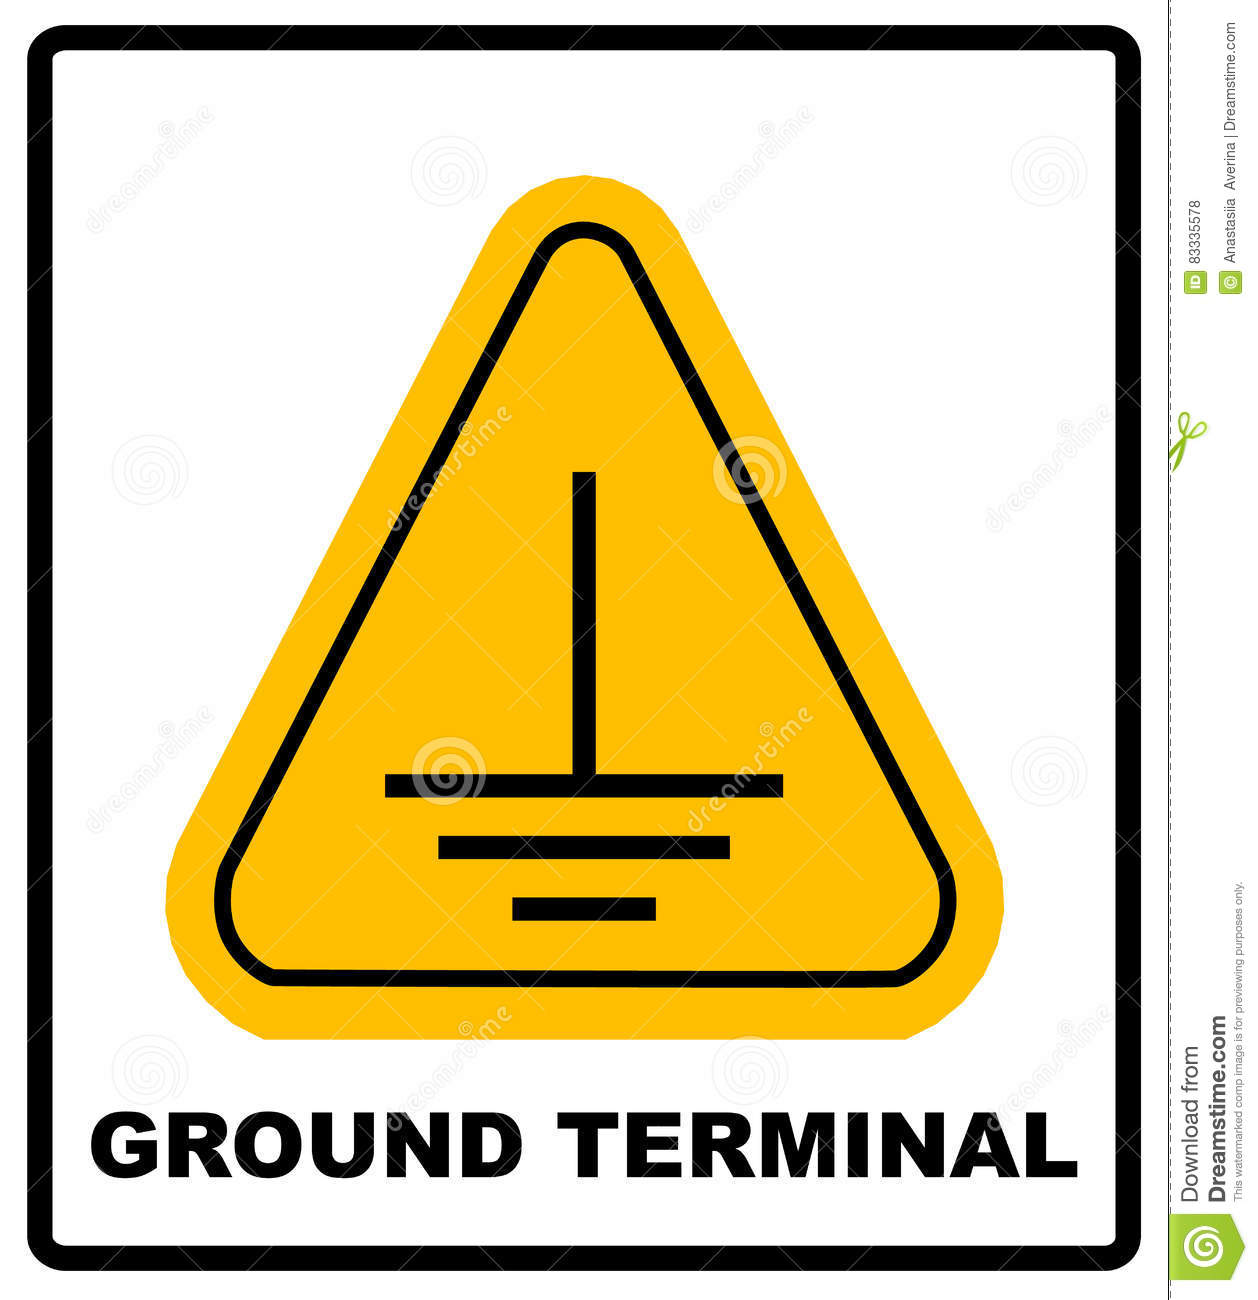 Electrical grounding sign stock vector illustration of electrical grounding sign biocorpaavc